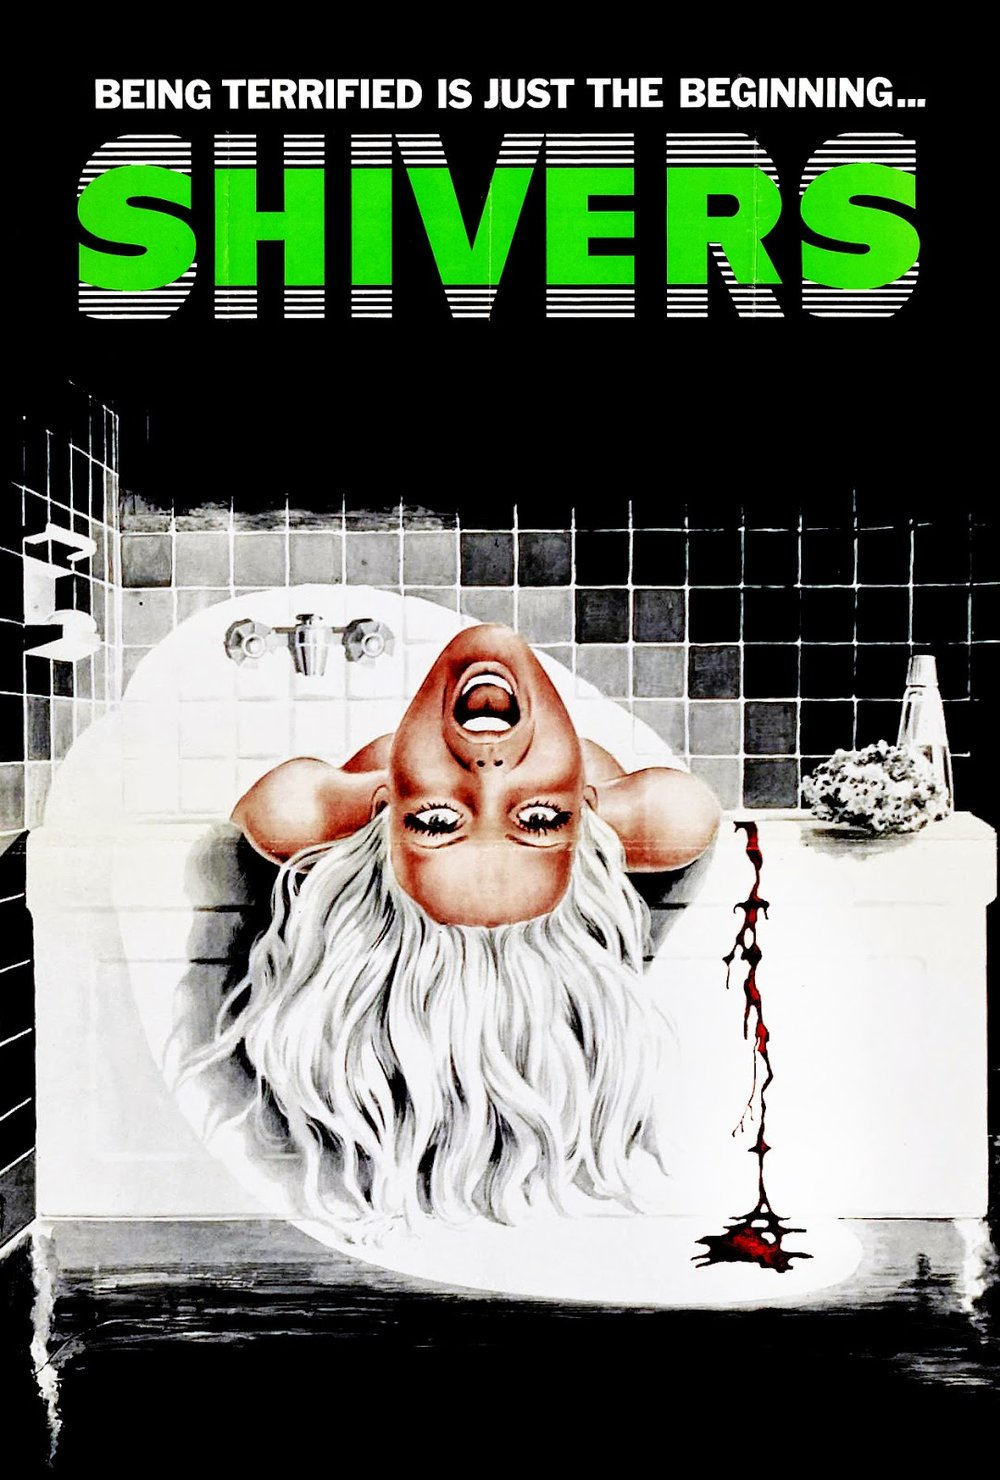 Shivers (1975) poster02.jpg